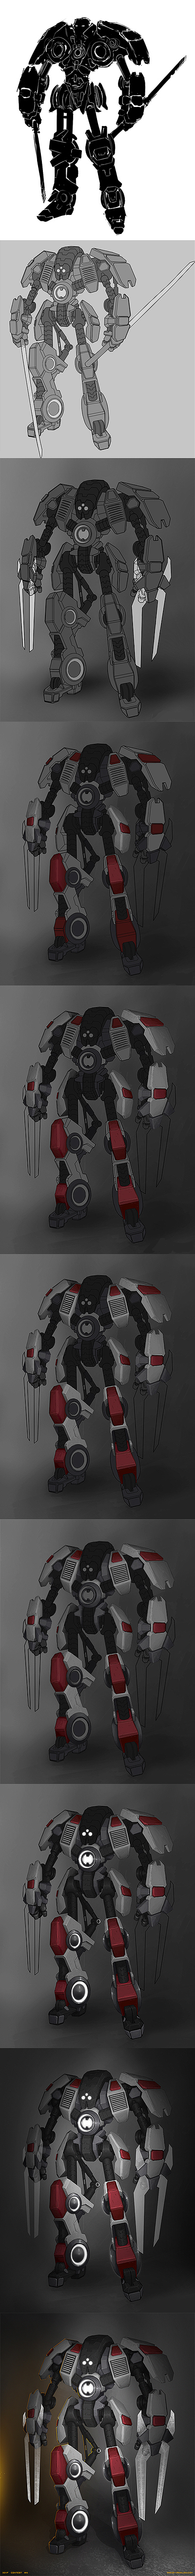 Mecha_3VF_process by Sylvain-Klein